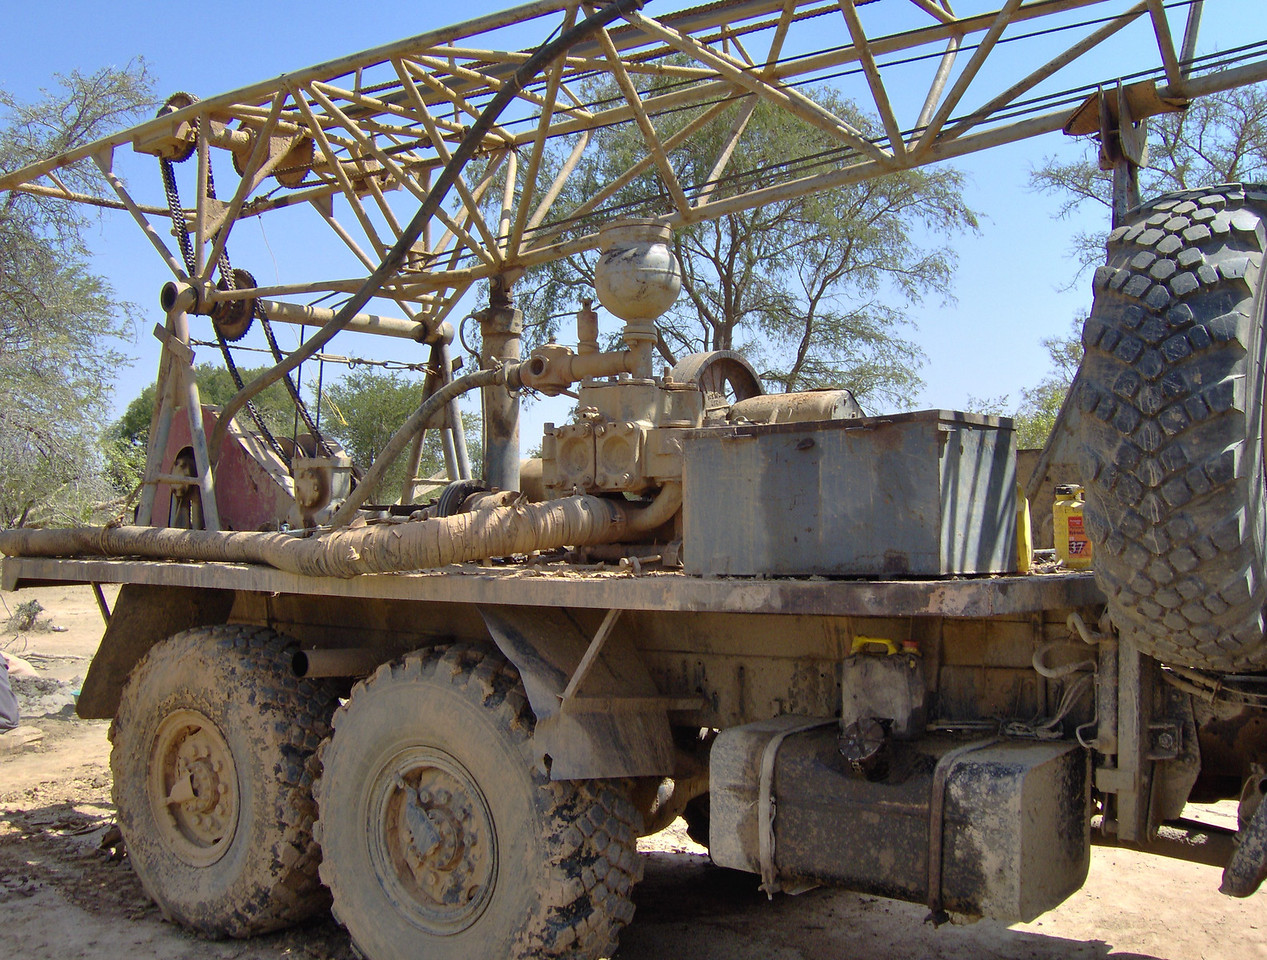 With the drilling done, the rig will be on its way to the next location fortunate enough to get clean drinking water.